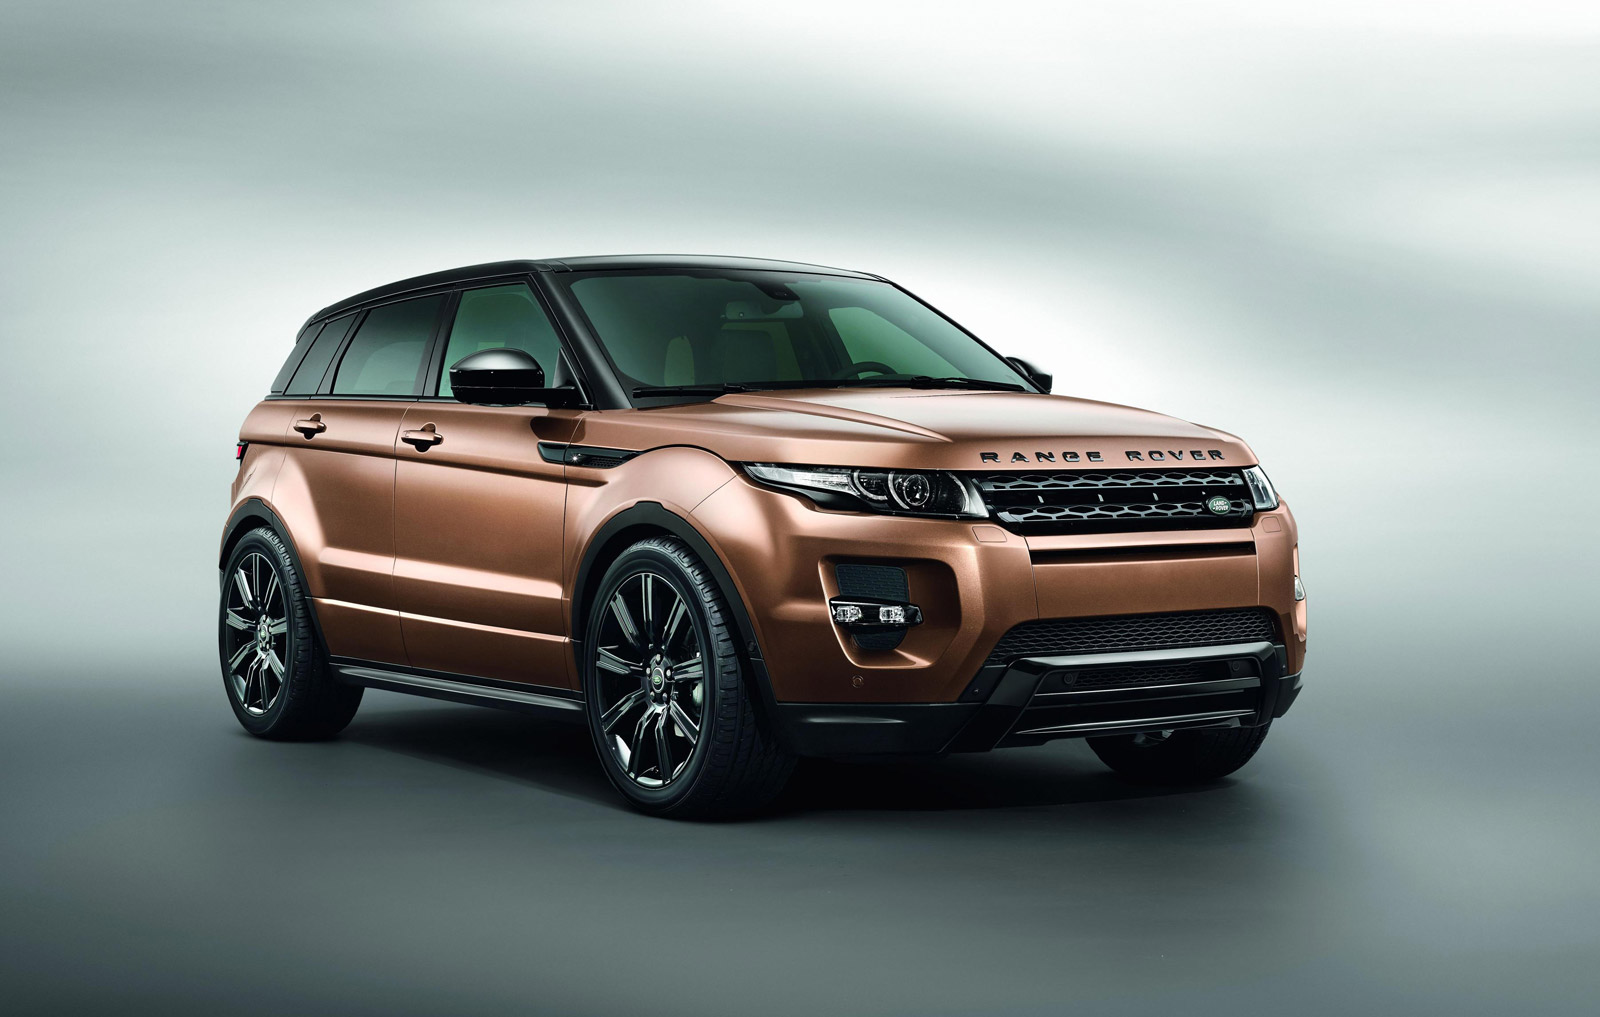 2014 land rover range rover evoque review ratings specs prices and photos the car connection. Black Bedroom Furniture Sets. Home Design Ideas